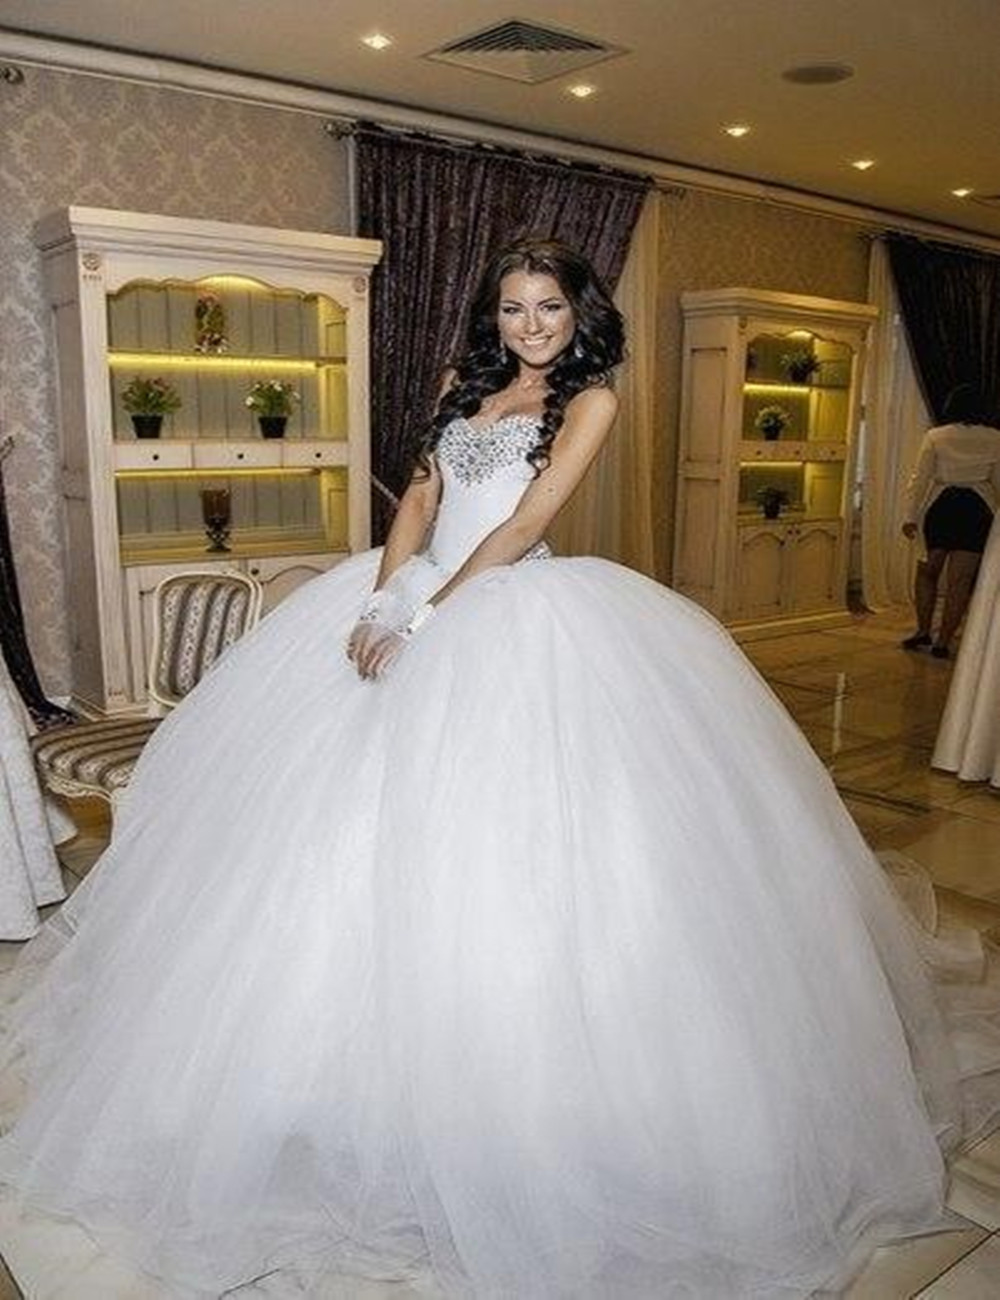 Pretty Giant Ball Gown Wedding Dress Images - Images for wedding ...